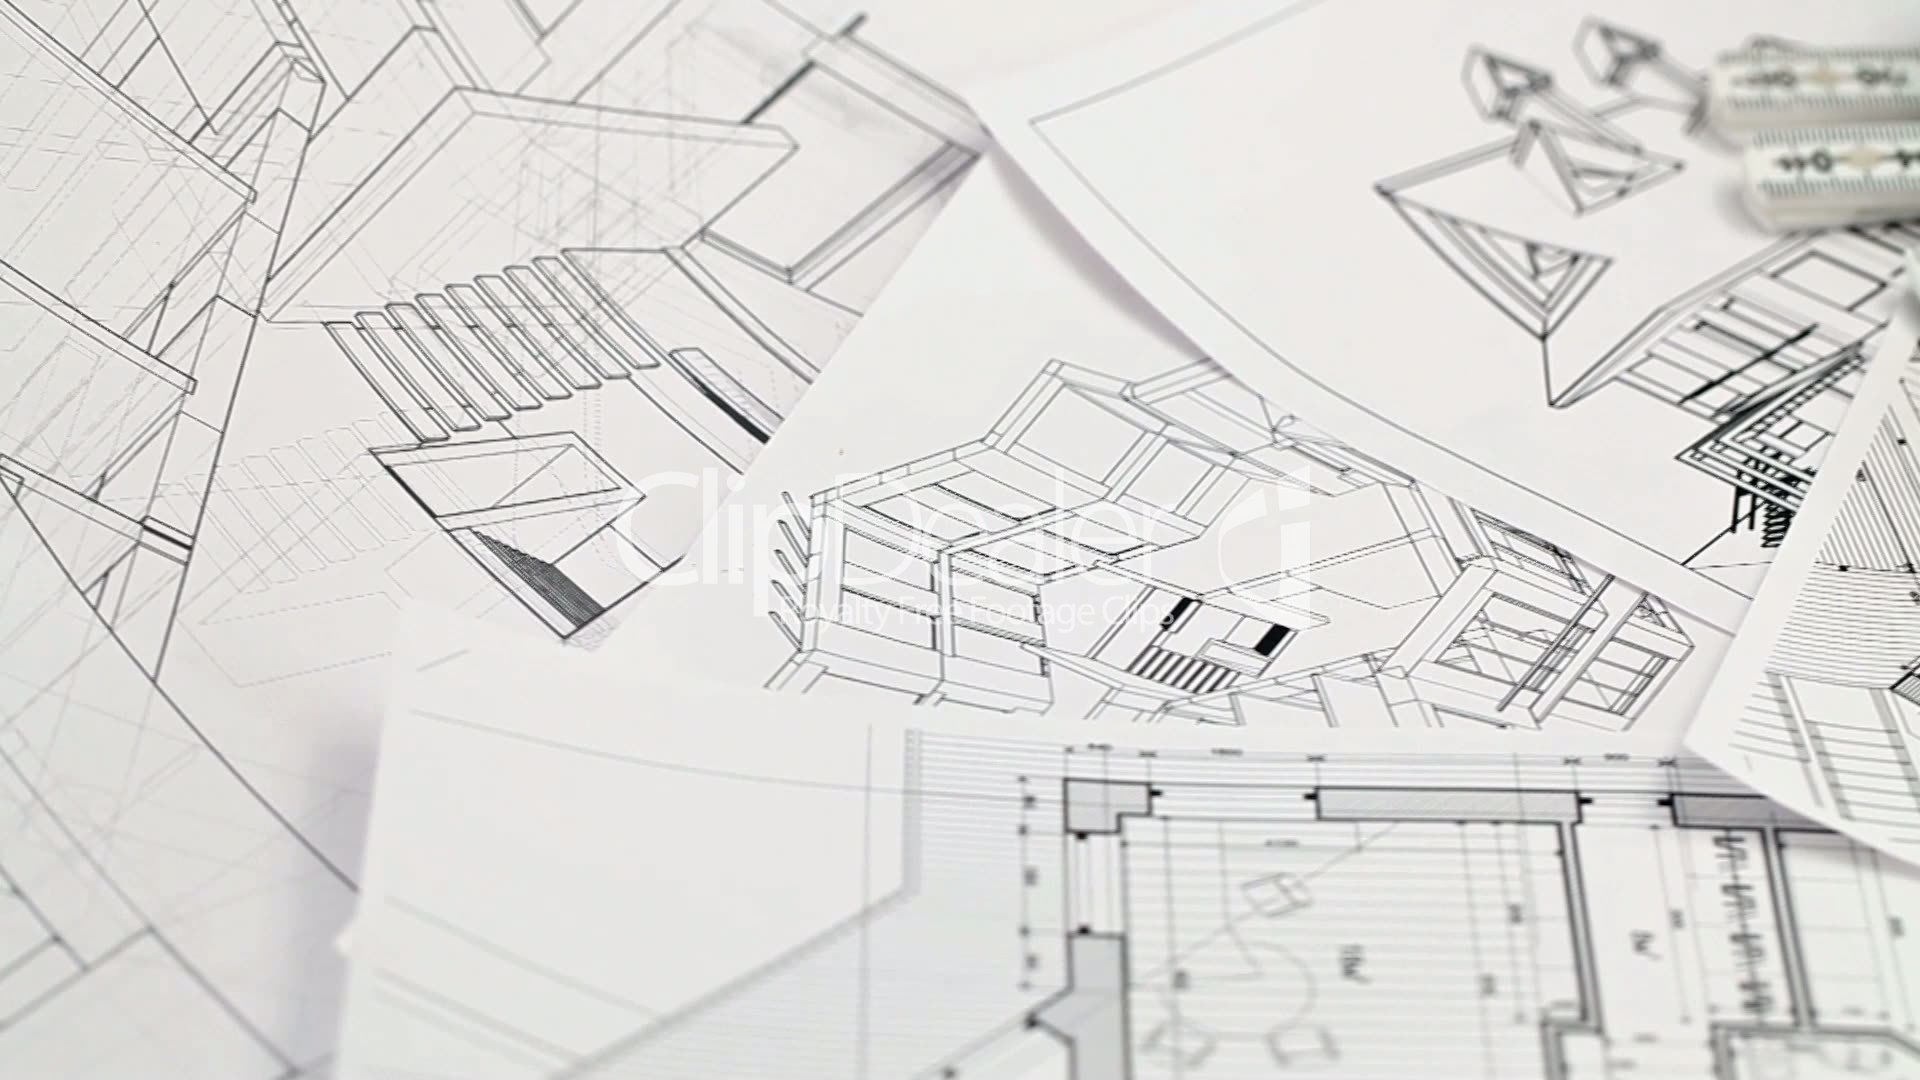 Architecture Blueprints Wallpaper To Architecture Blueprints Wallpaper Home Design Ideas Images Of For Pinterest calto